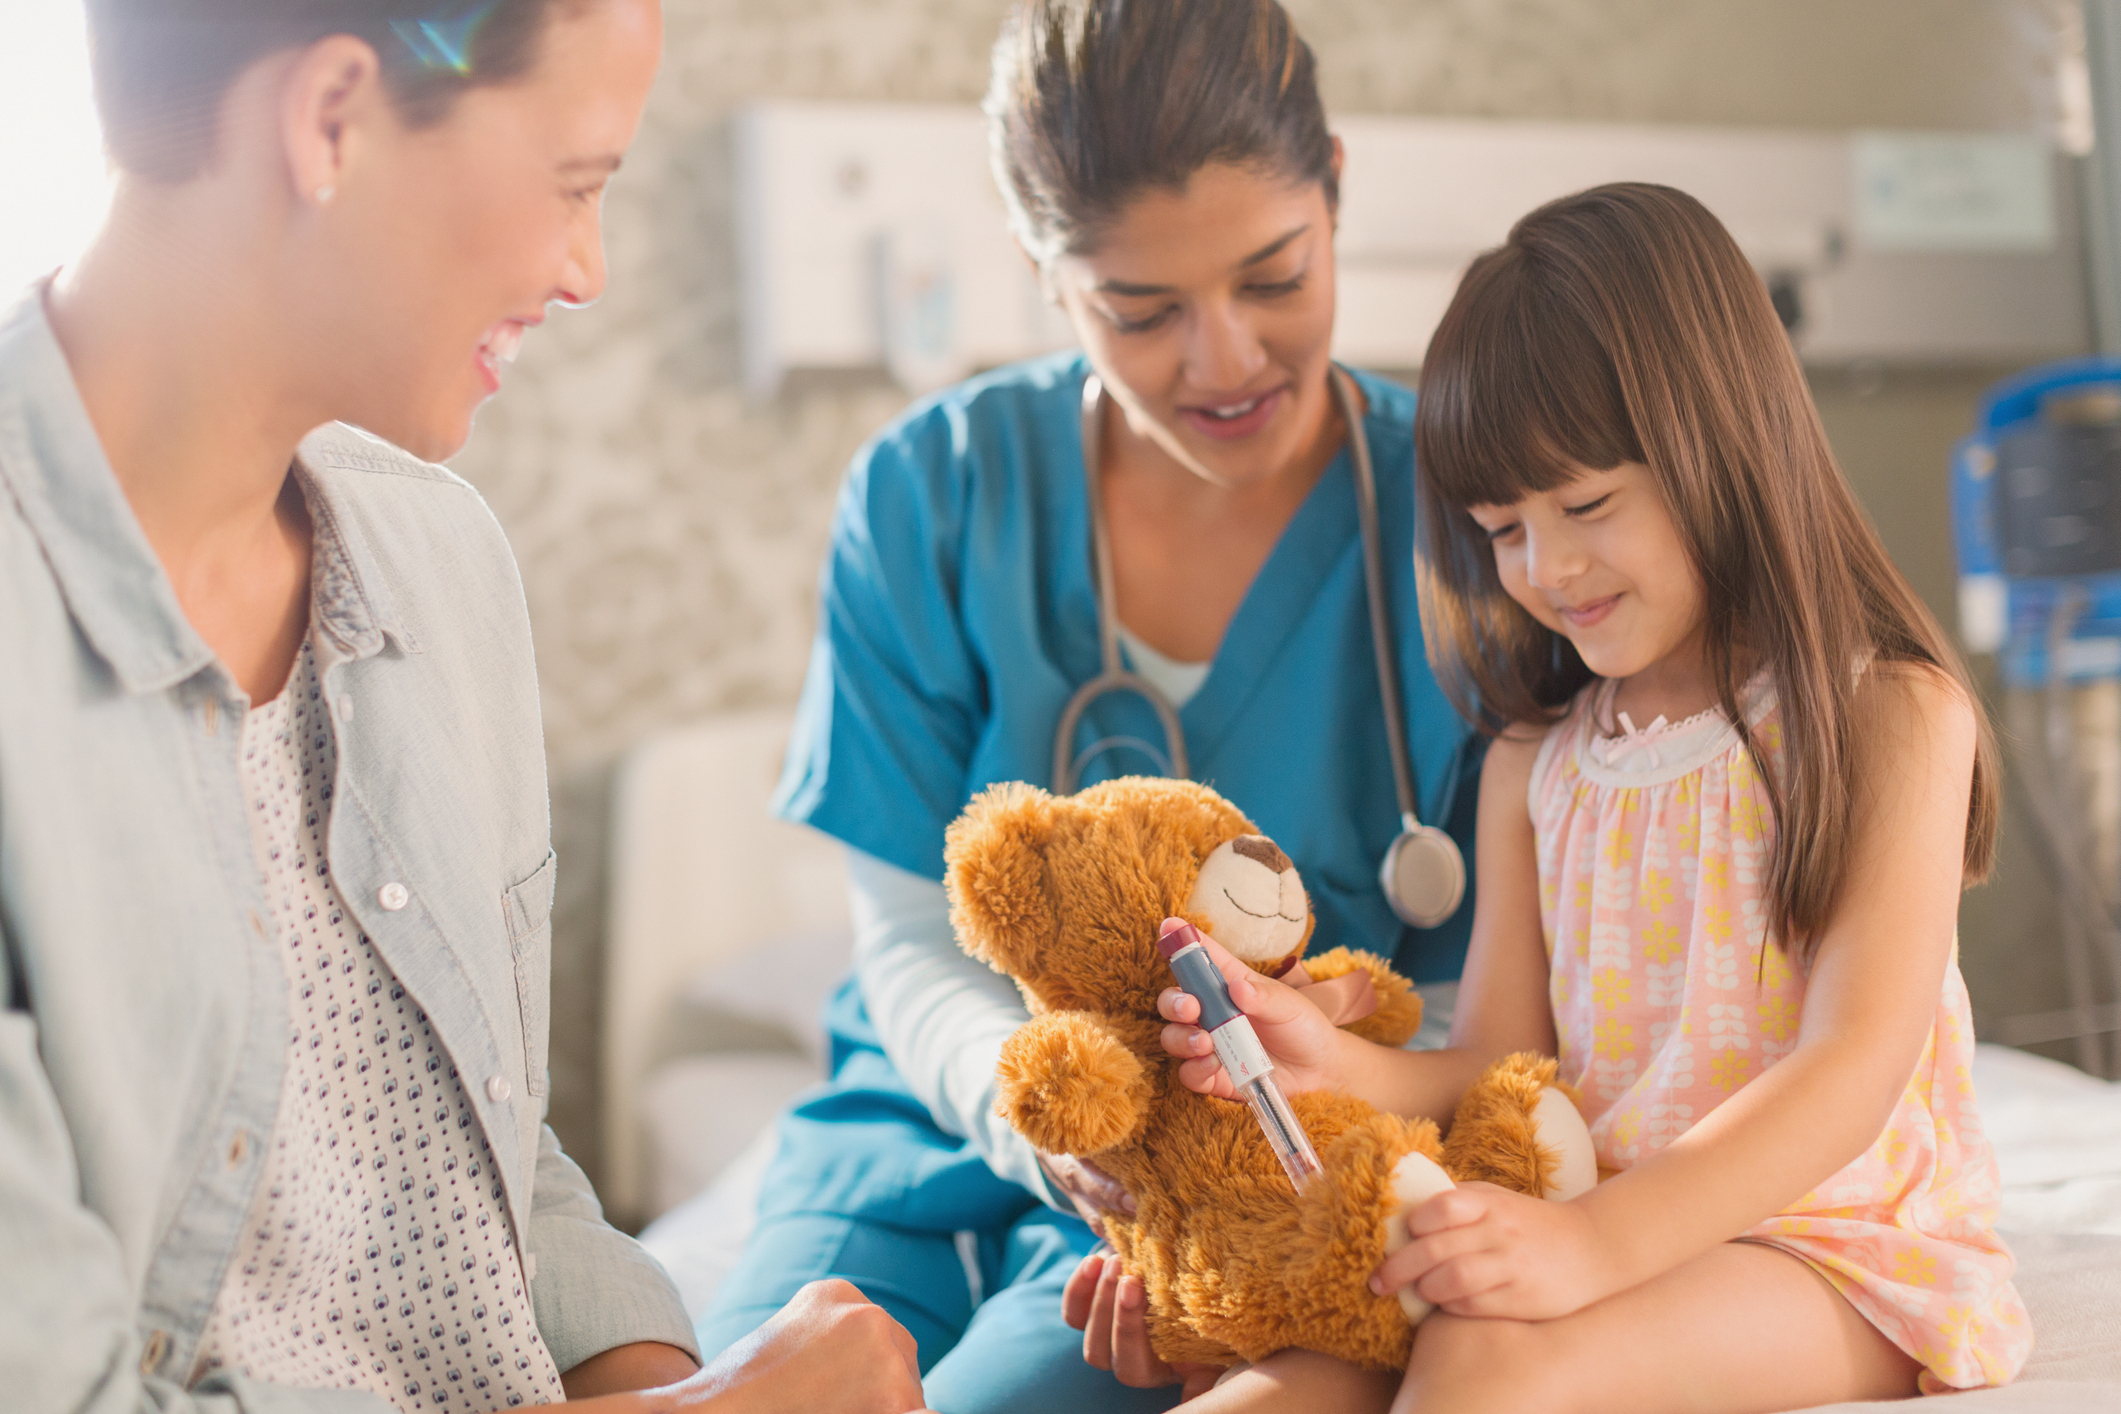 female-nurse-and-mother-watching-girl-patient-using-insulin-pen-on-teddy-bearjpg